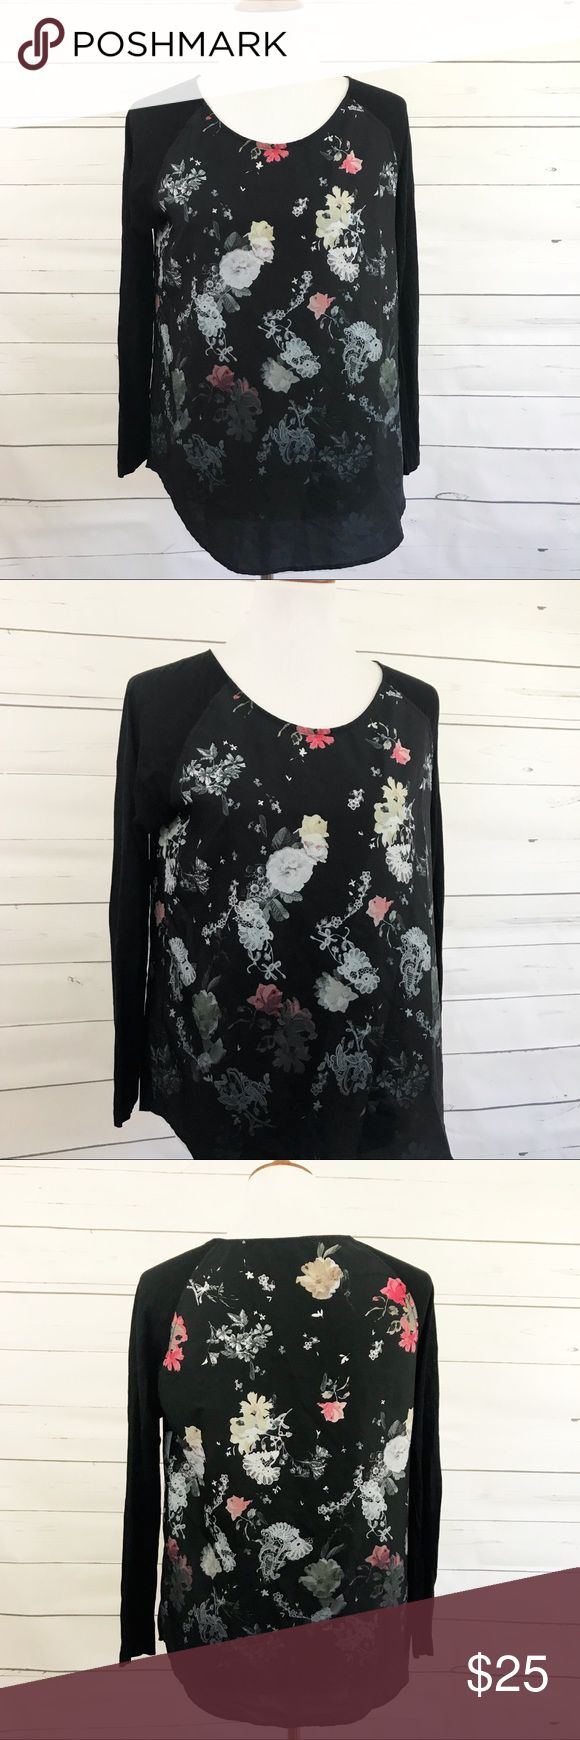 """French Connection black floral baseball tee Black floral silky front baseball tee by French Connection. Perfect for layering under a vest with jeans and boots. Size medium. Approximate flat measurements: bust- 19.5"""", overall length- 26"""" ✅ offers welcome French Connection Tops"""